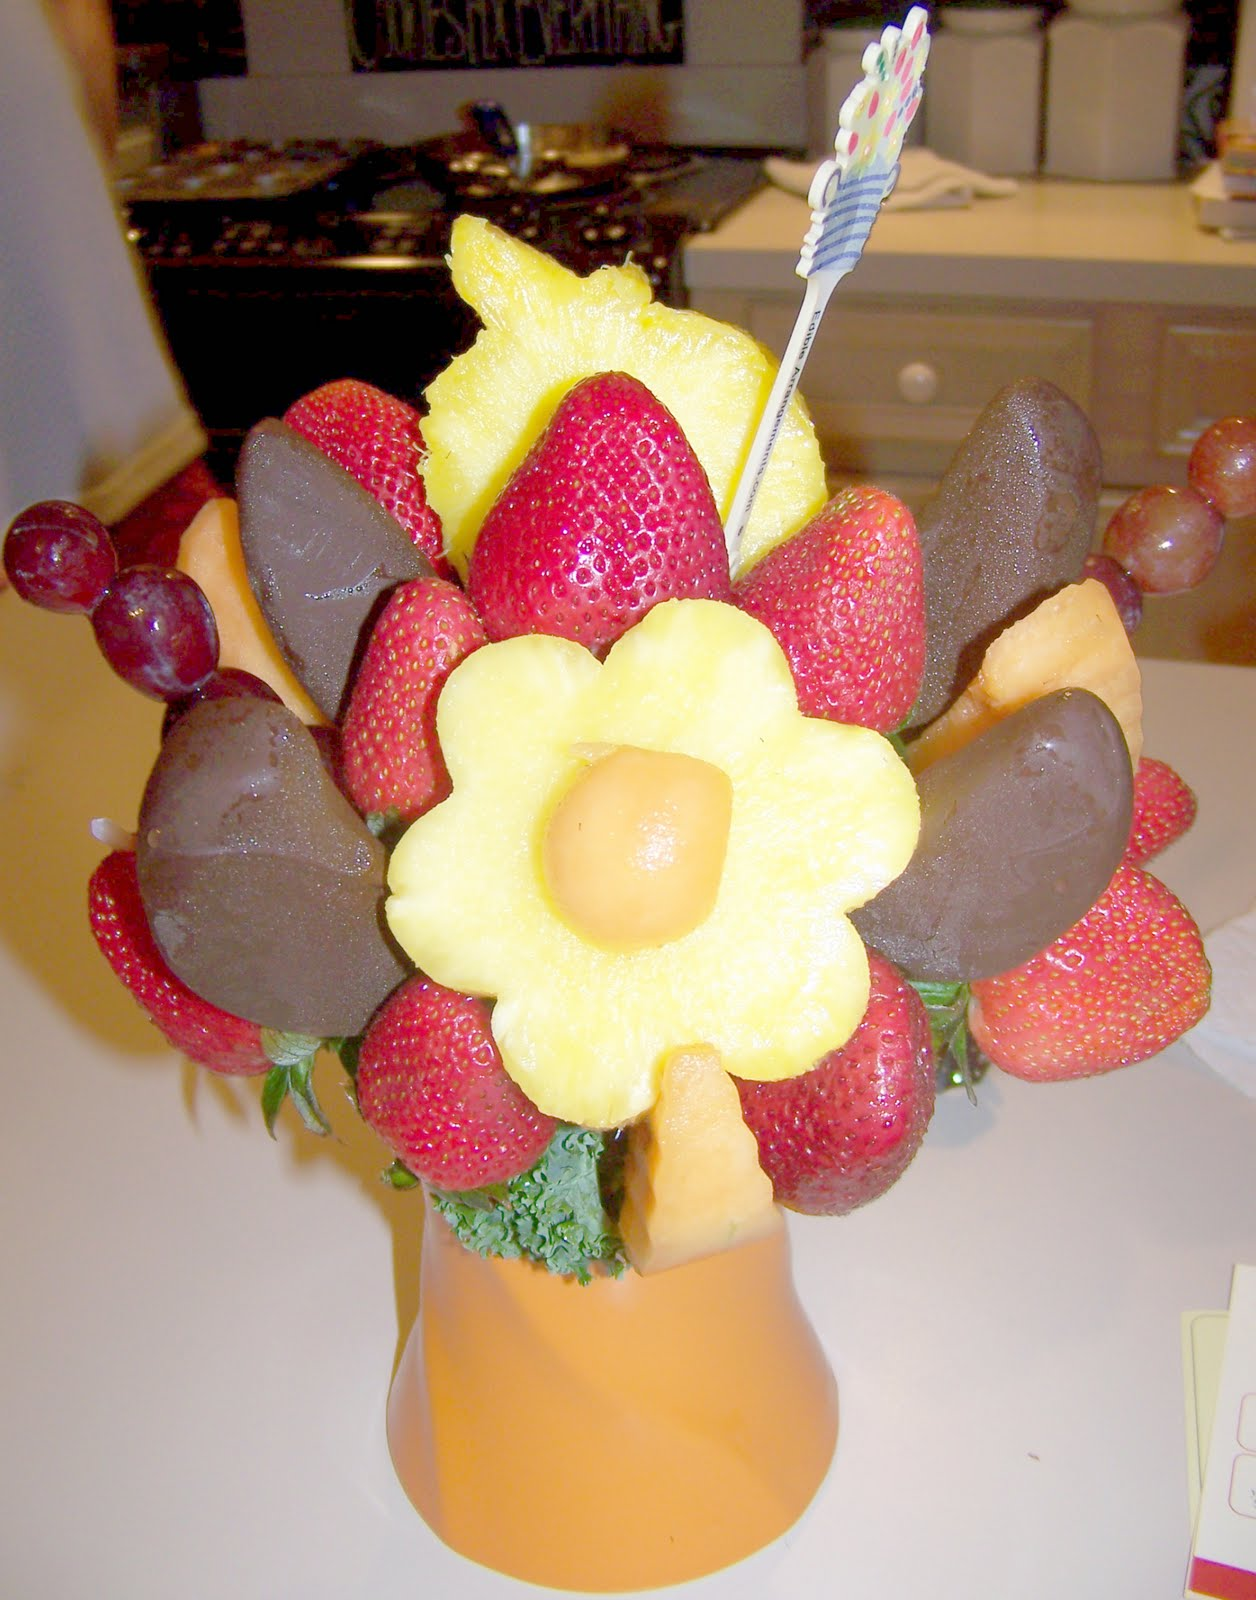 deanna s corner  oh goodness it was so delicious those are chocolate covered apples they were sour apples covered a dark chocolate amazing the pineapple was freshly